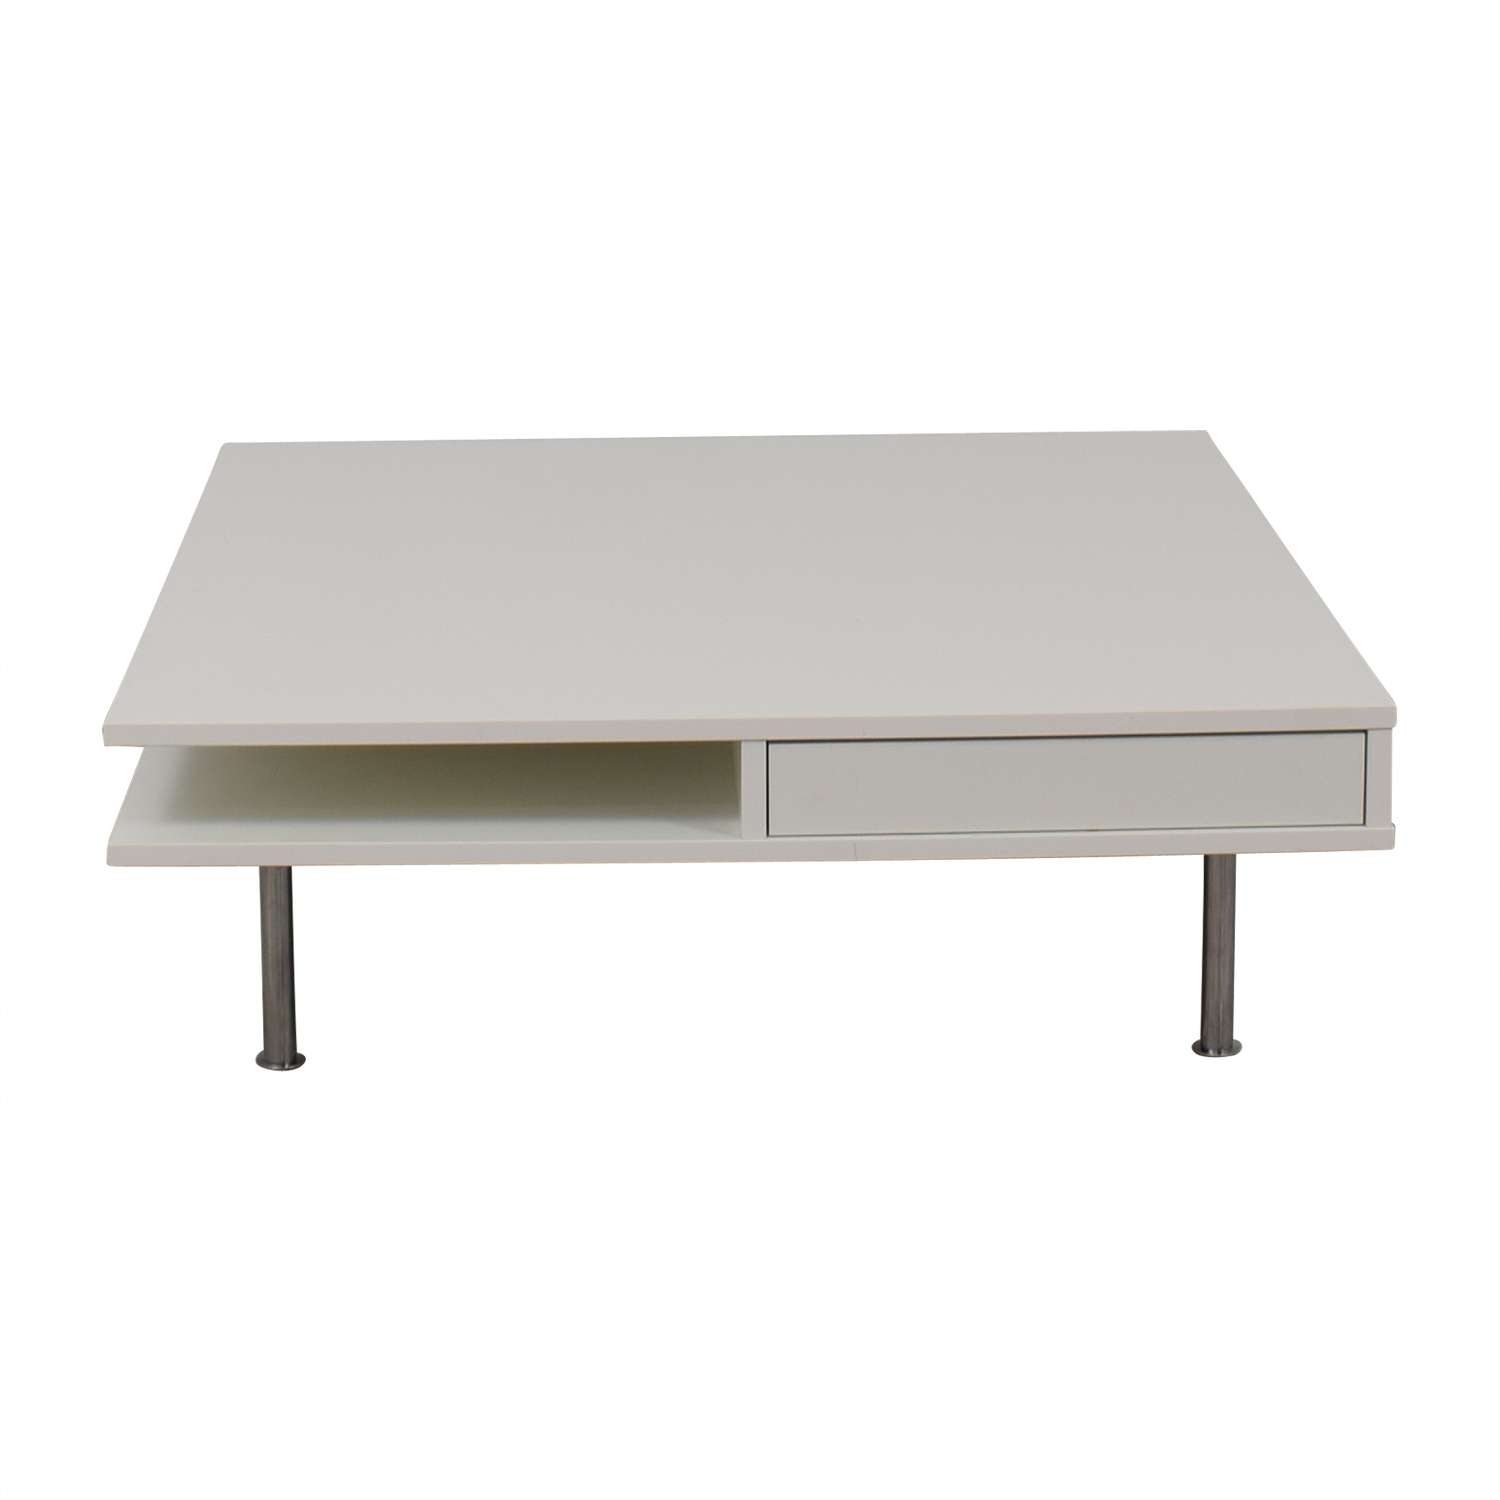 [%widely Used Modern Coffee Tables Inside 62% Off – White Modern Coffee Table / Tables|62% Off – White Modern Coffee Table / Tables In Well Liked Modern Coffee Tables%] (View 19 of 20)